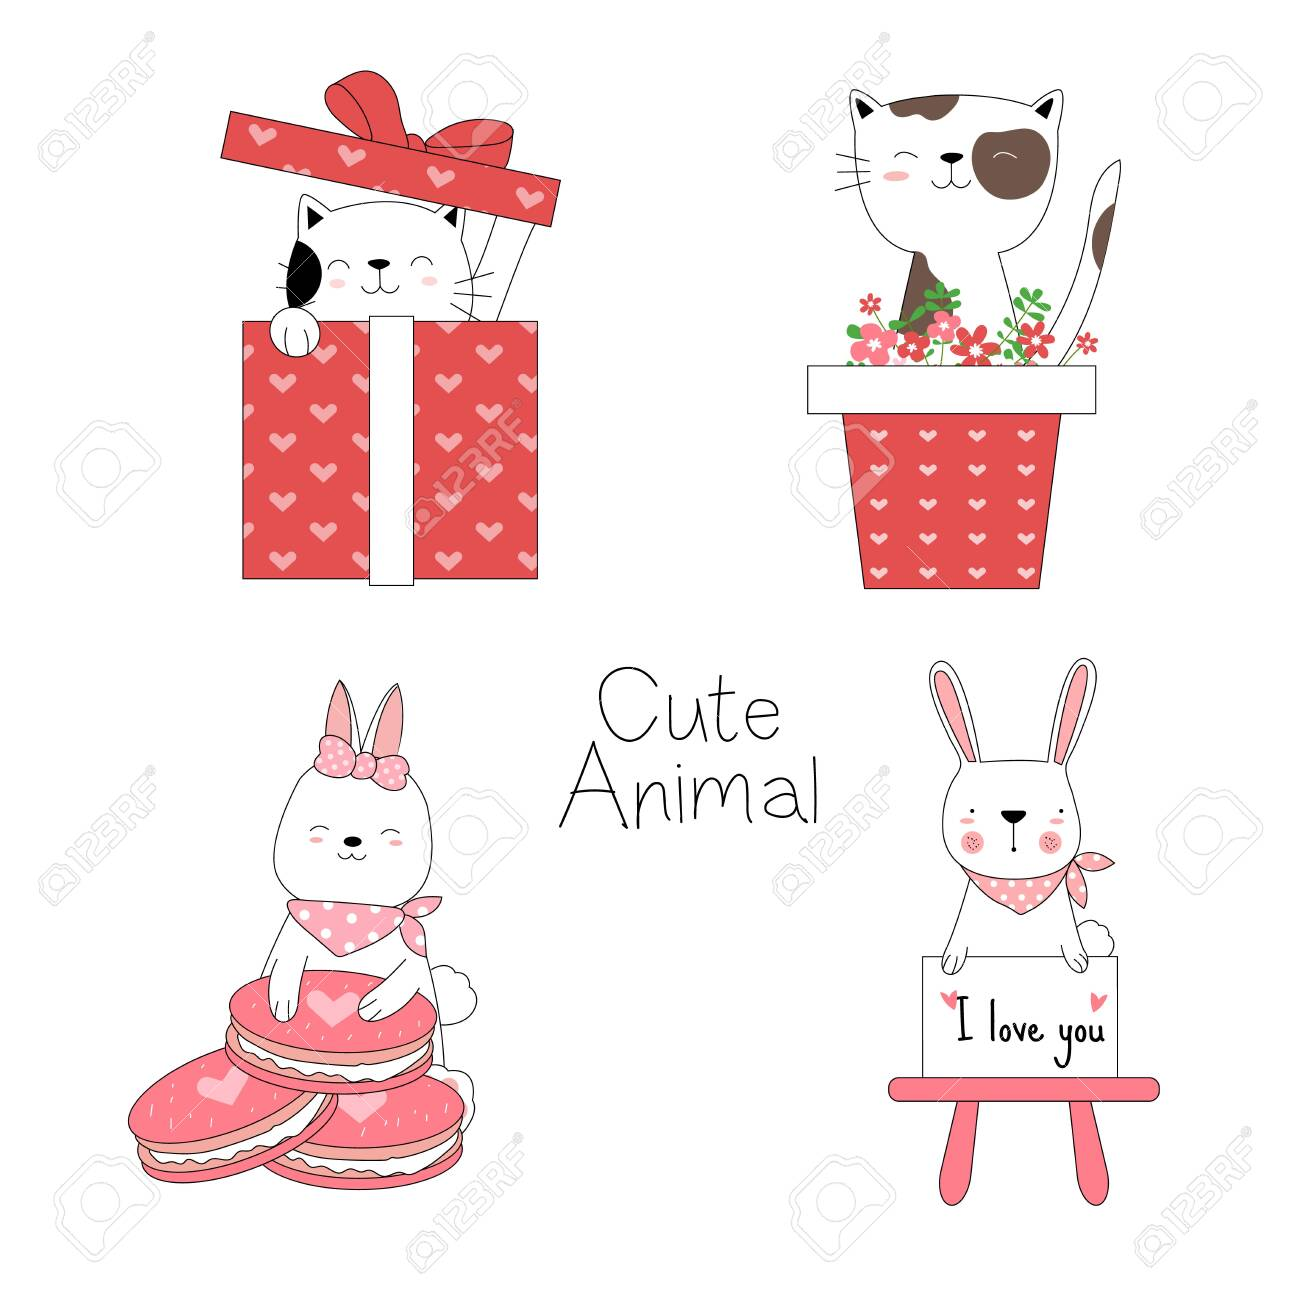 Cute Baby Animals With Flower Gift Box Cartoon Hand Drawn Style For